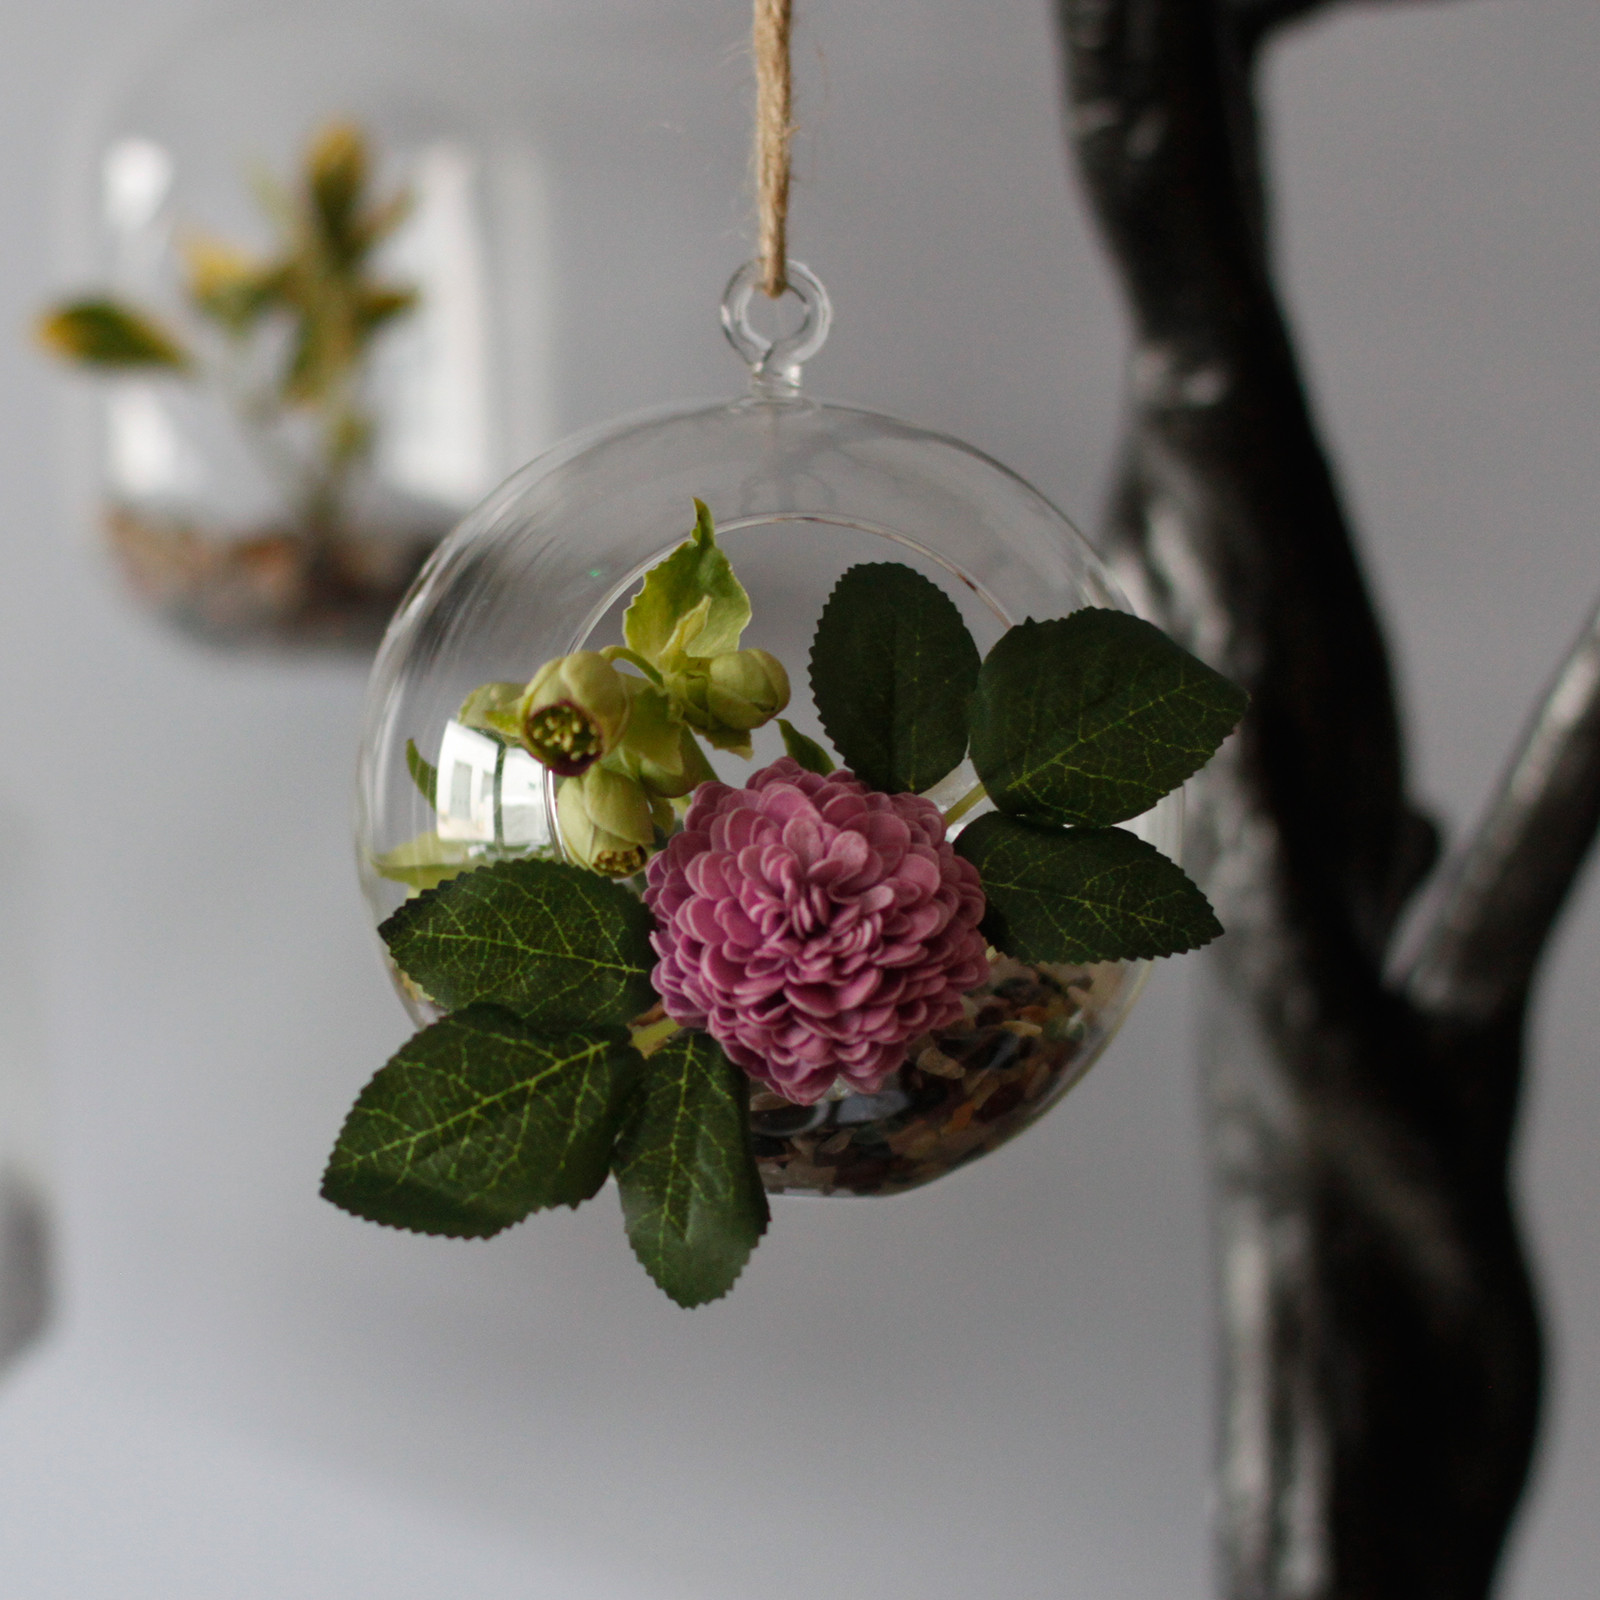 All Glass Terrarium Globe Hanging Bowl Aw Dropship Your Giftware And Aromatherapy Dropshipping Supplier